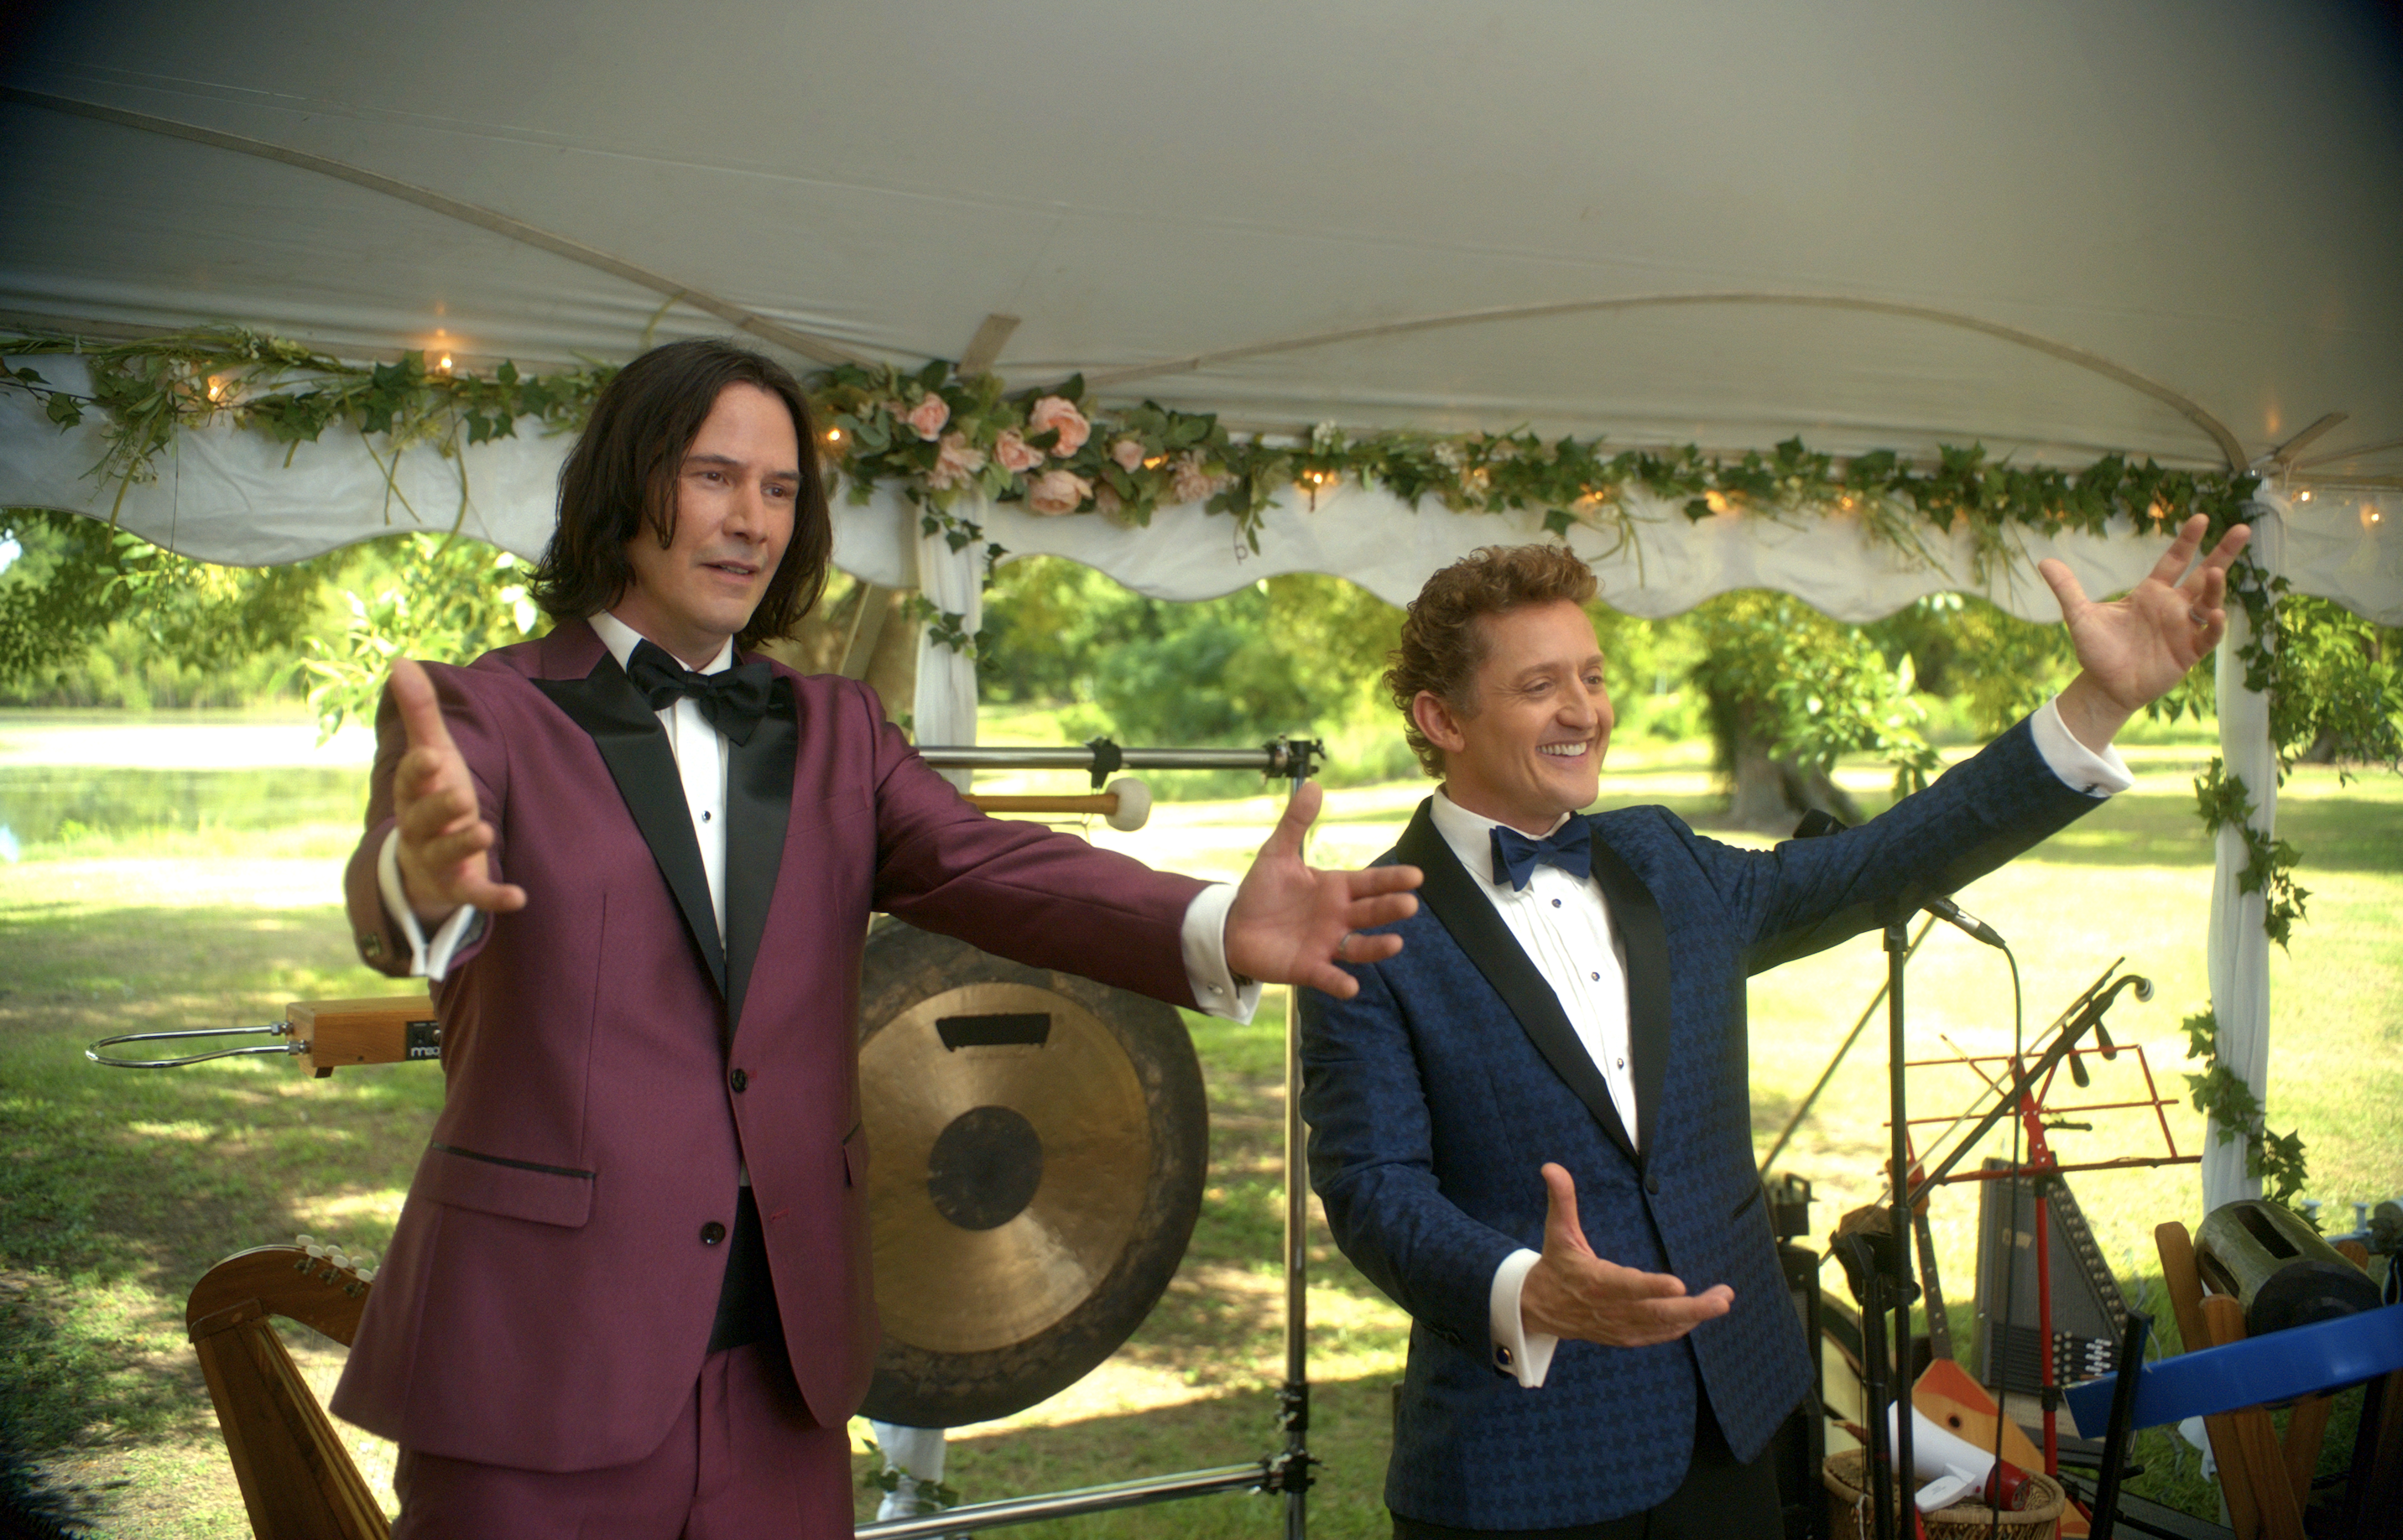 Bill & Ted Face The Music set to release in theaters this summer